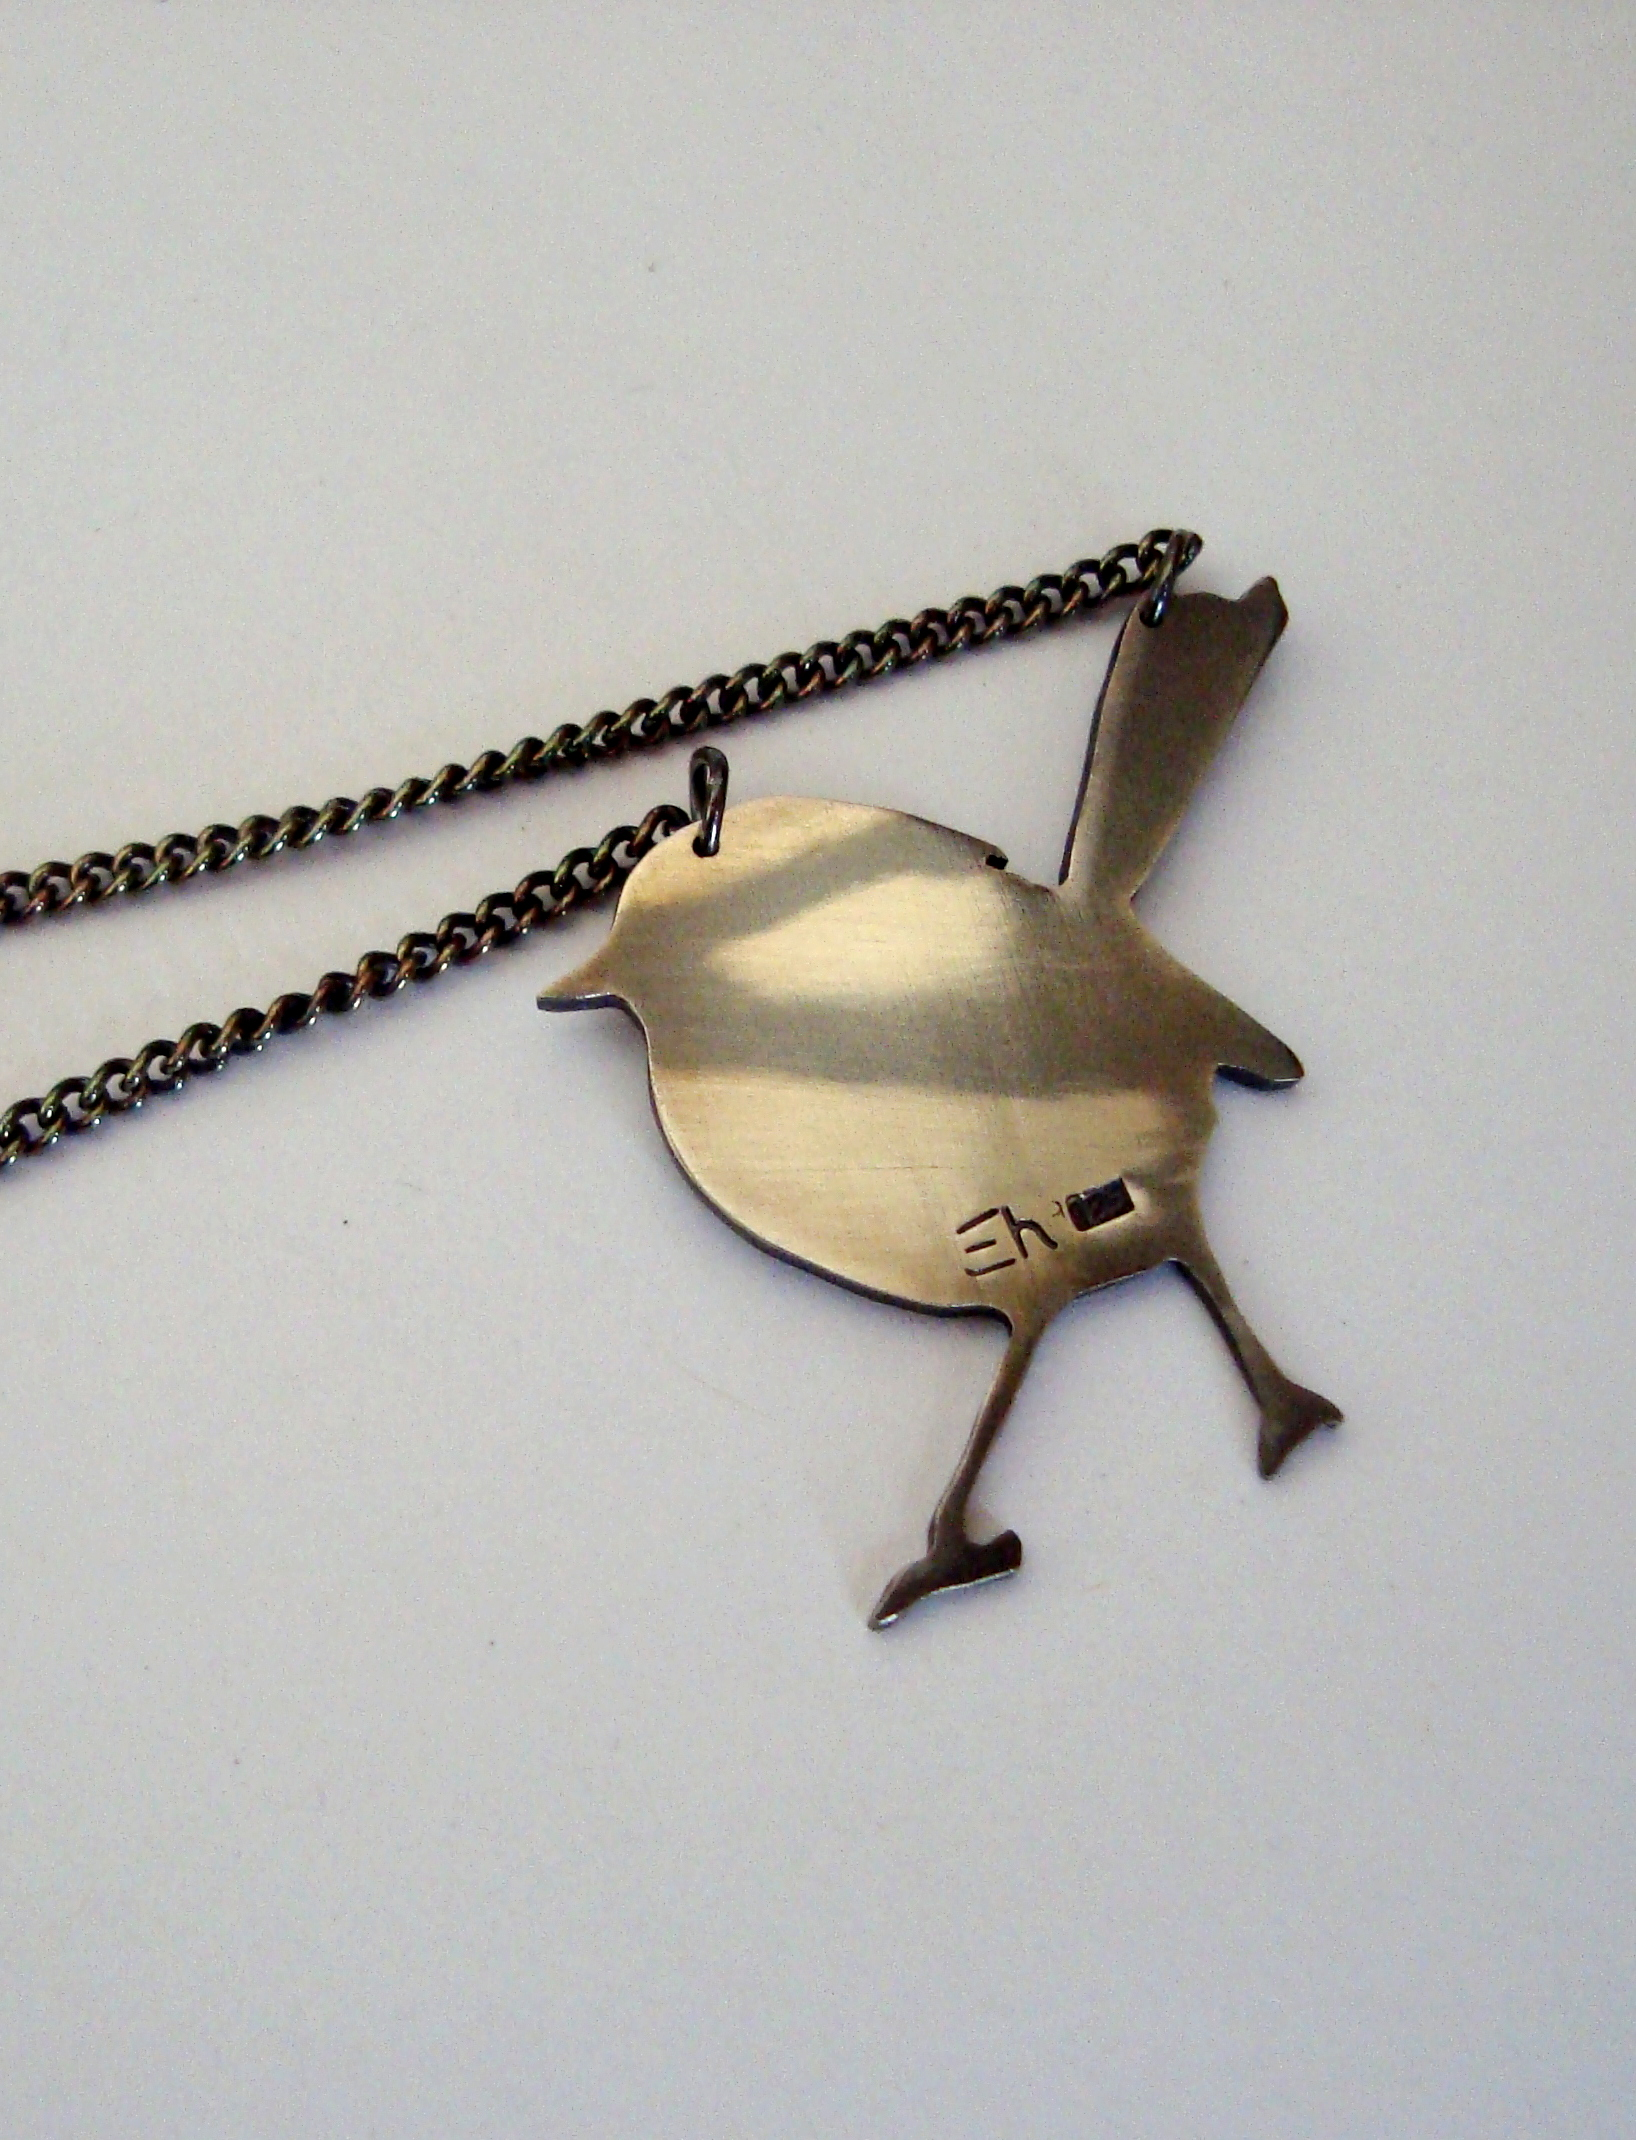 Superb Blue Wren Necklace - Oxidised Silver